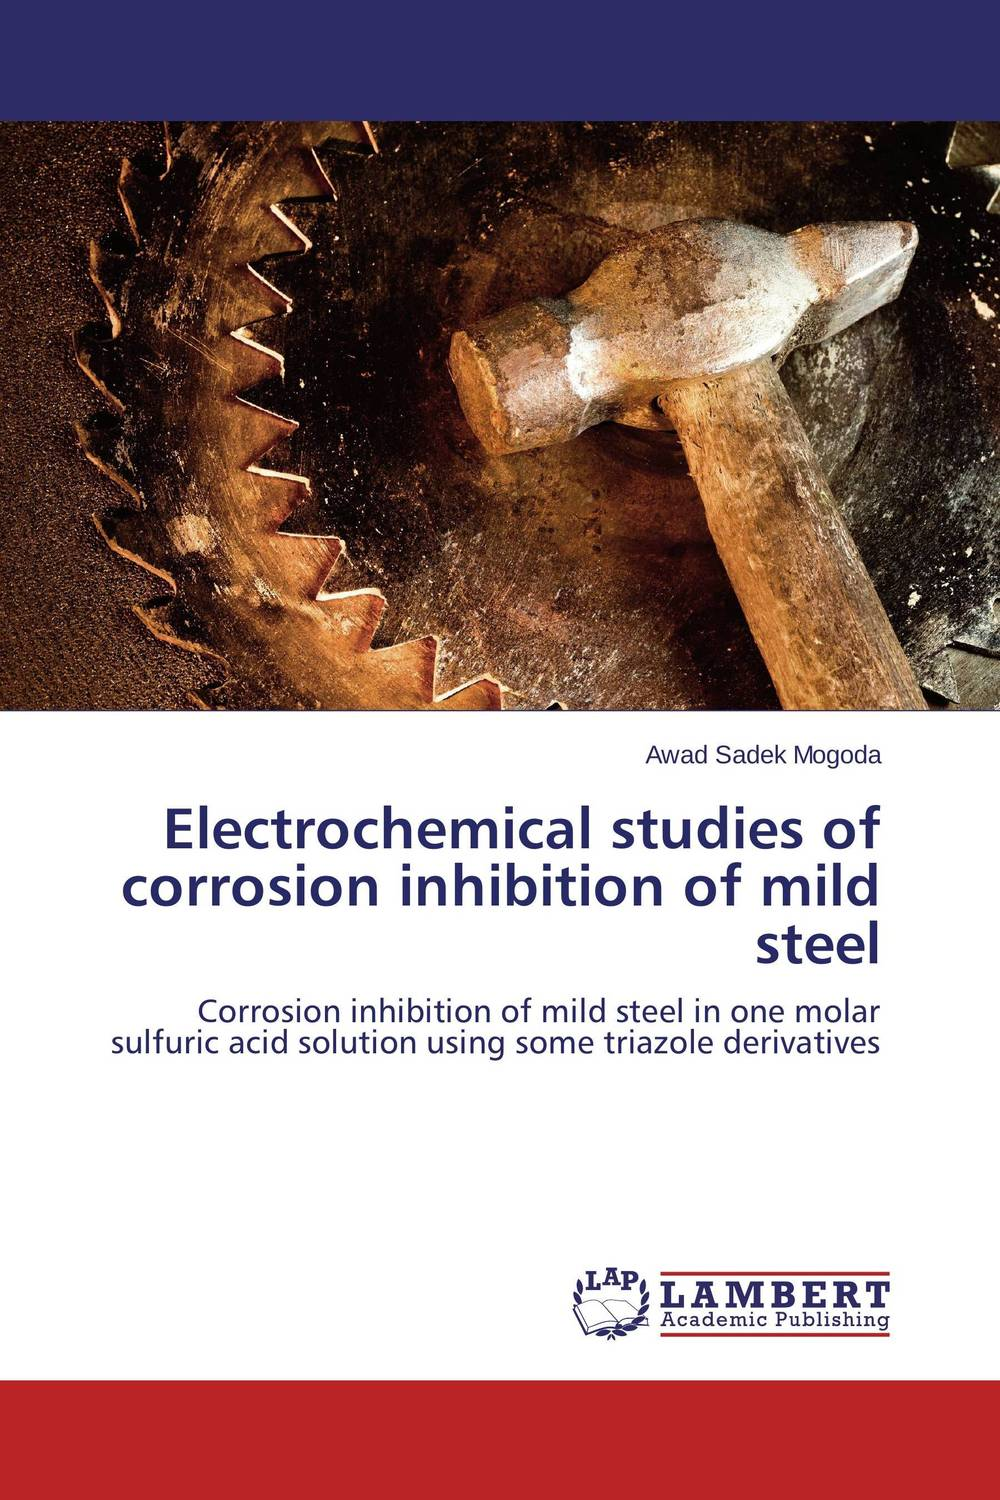 Electrochemical studies of corrosion inhibition of mild steel